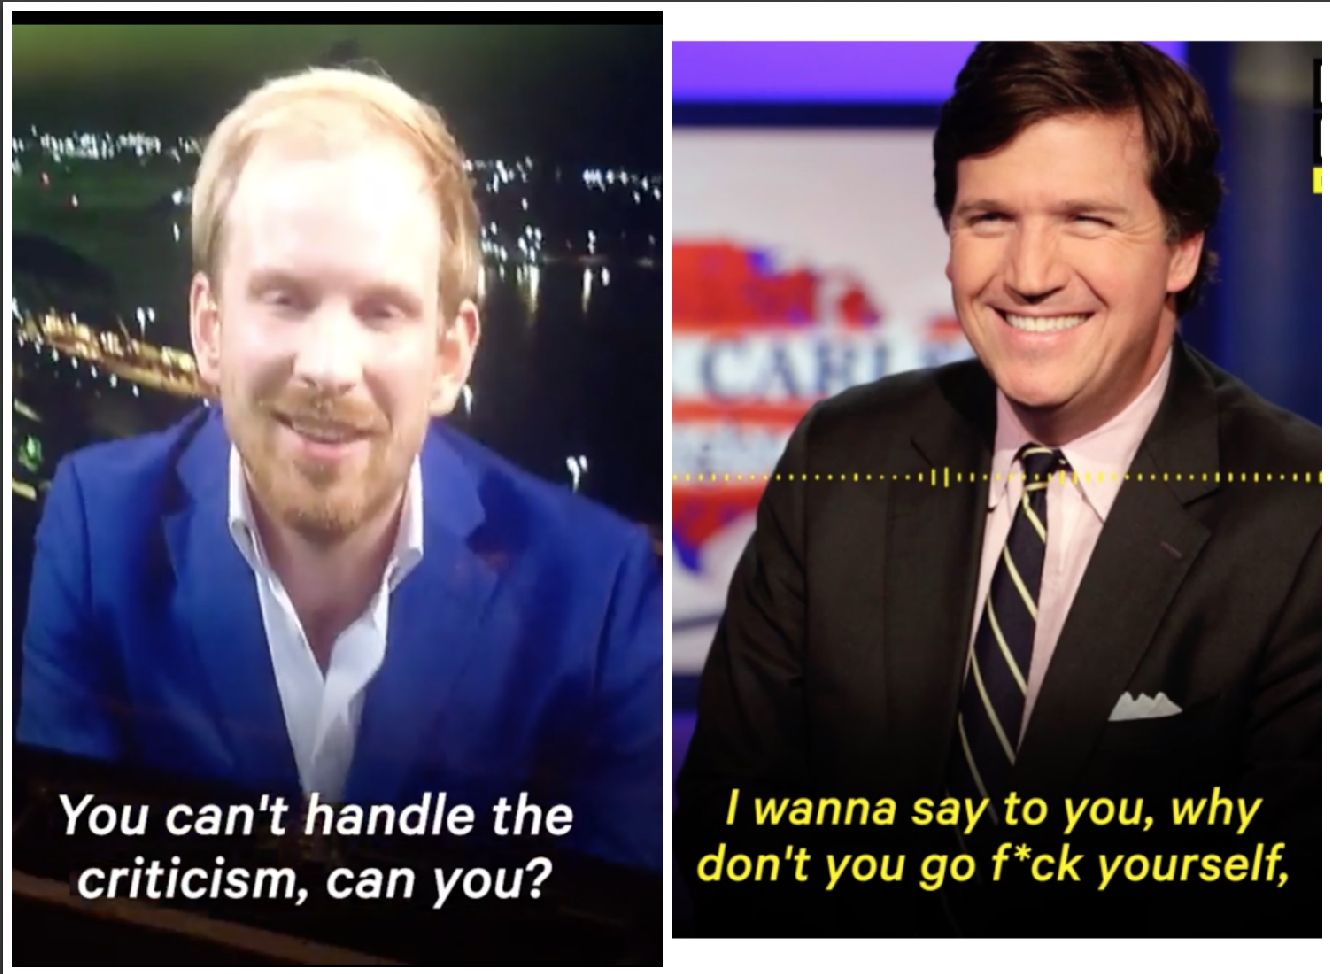 Tucker Carlson Tells Historian To 'Go F**k' Himself In Spiked Fox News